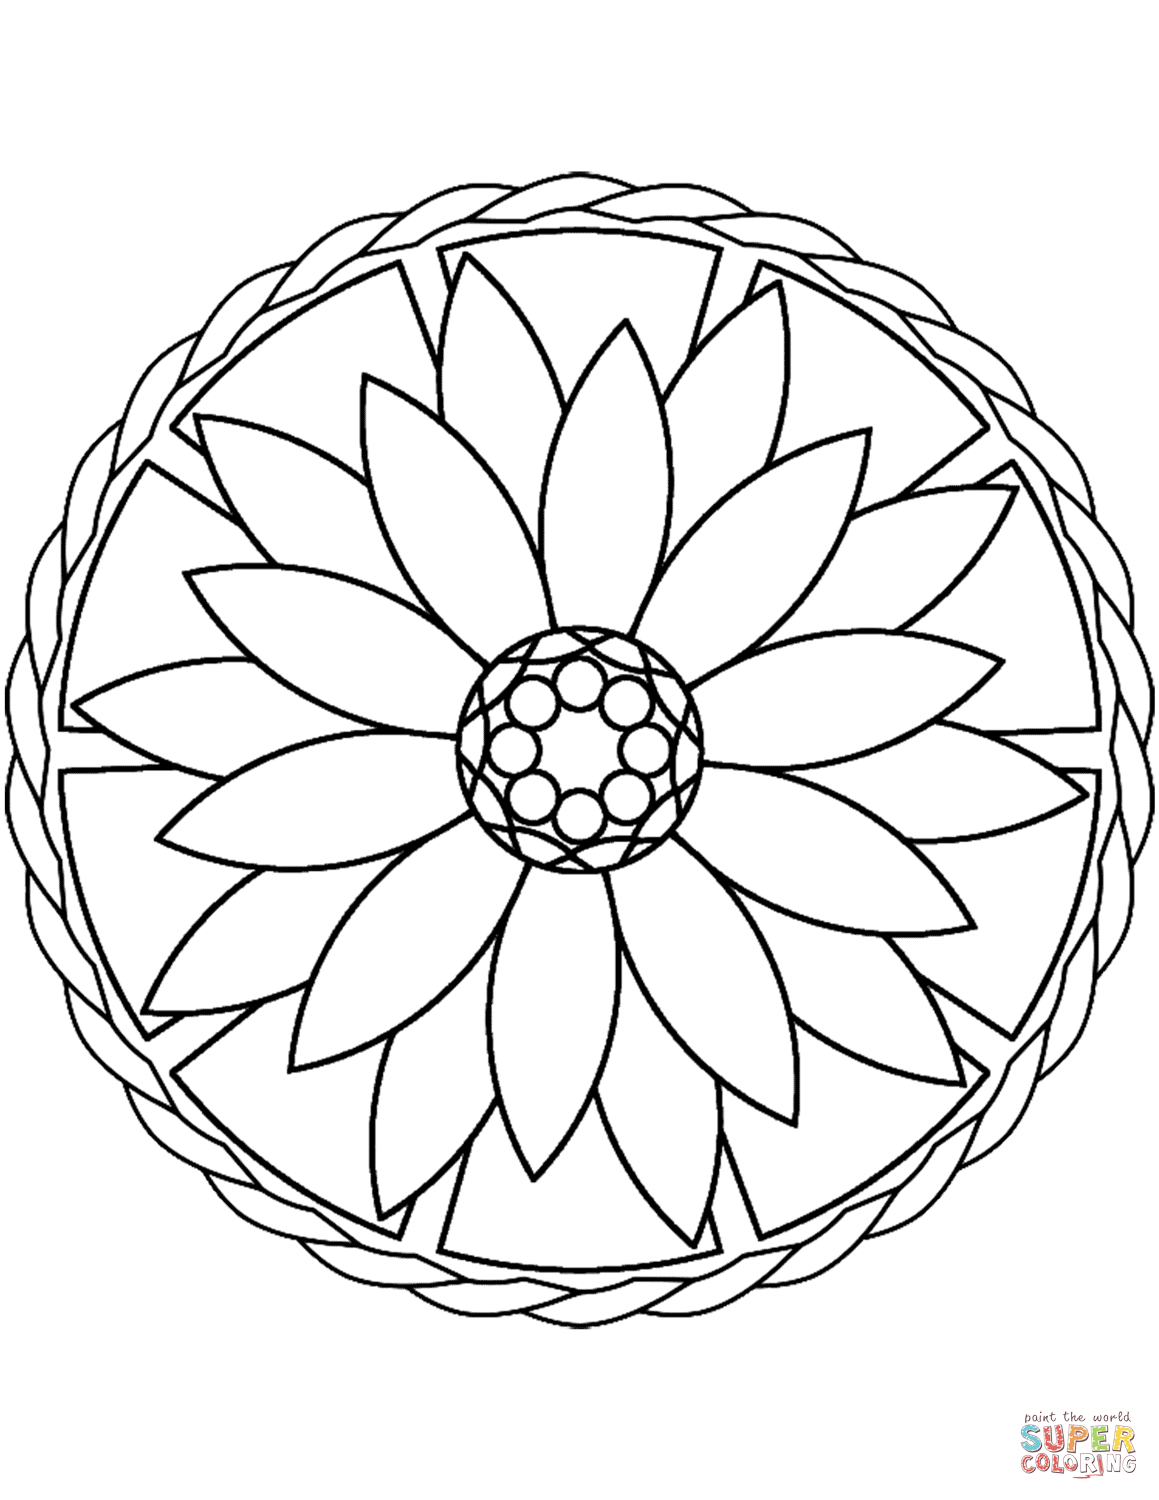 simple mandalas to color complex abstract mandala simple mandalas 100 to mandalas simple color